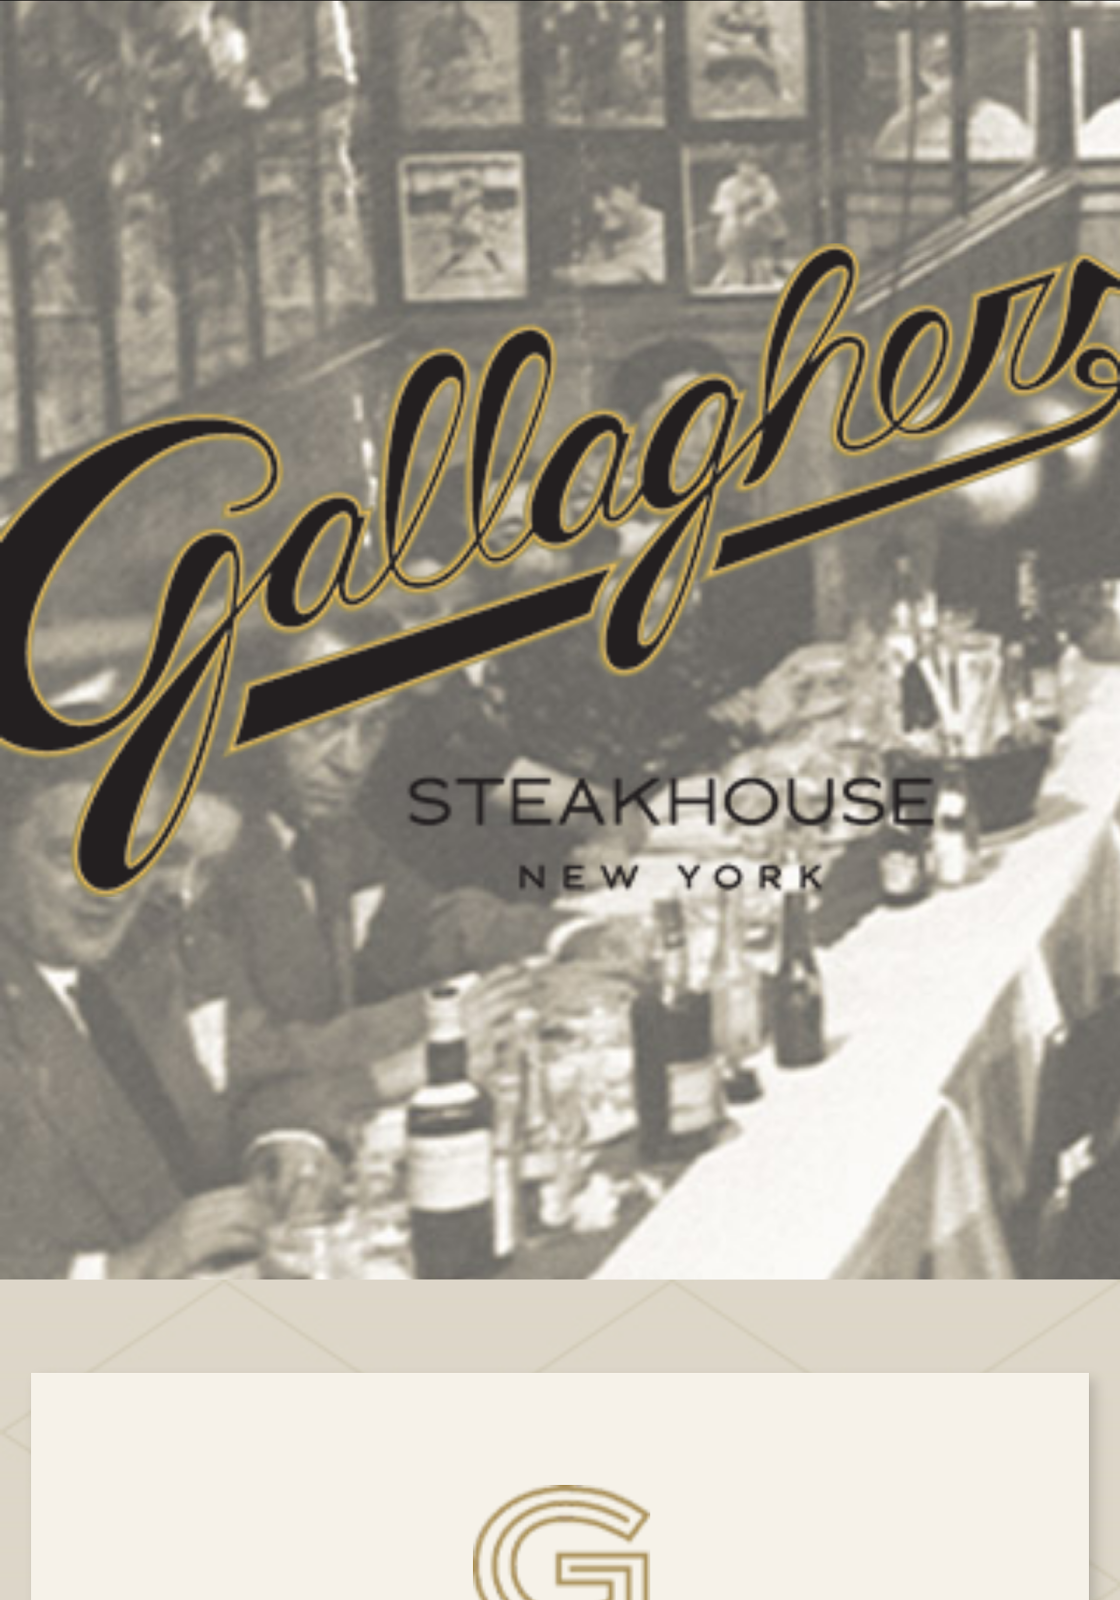 I have never been to Gallaghers but when I read reviews it had to be in New Beginnings